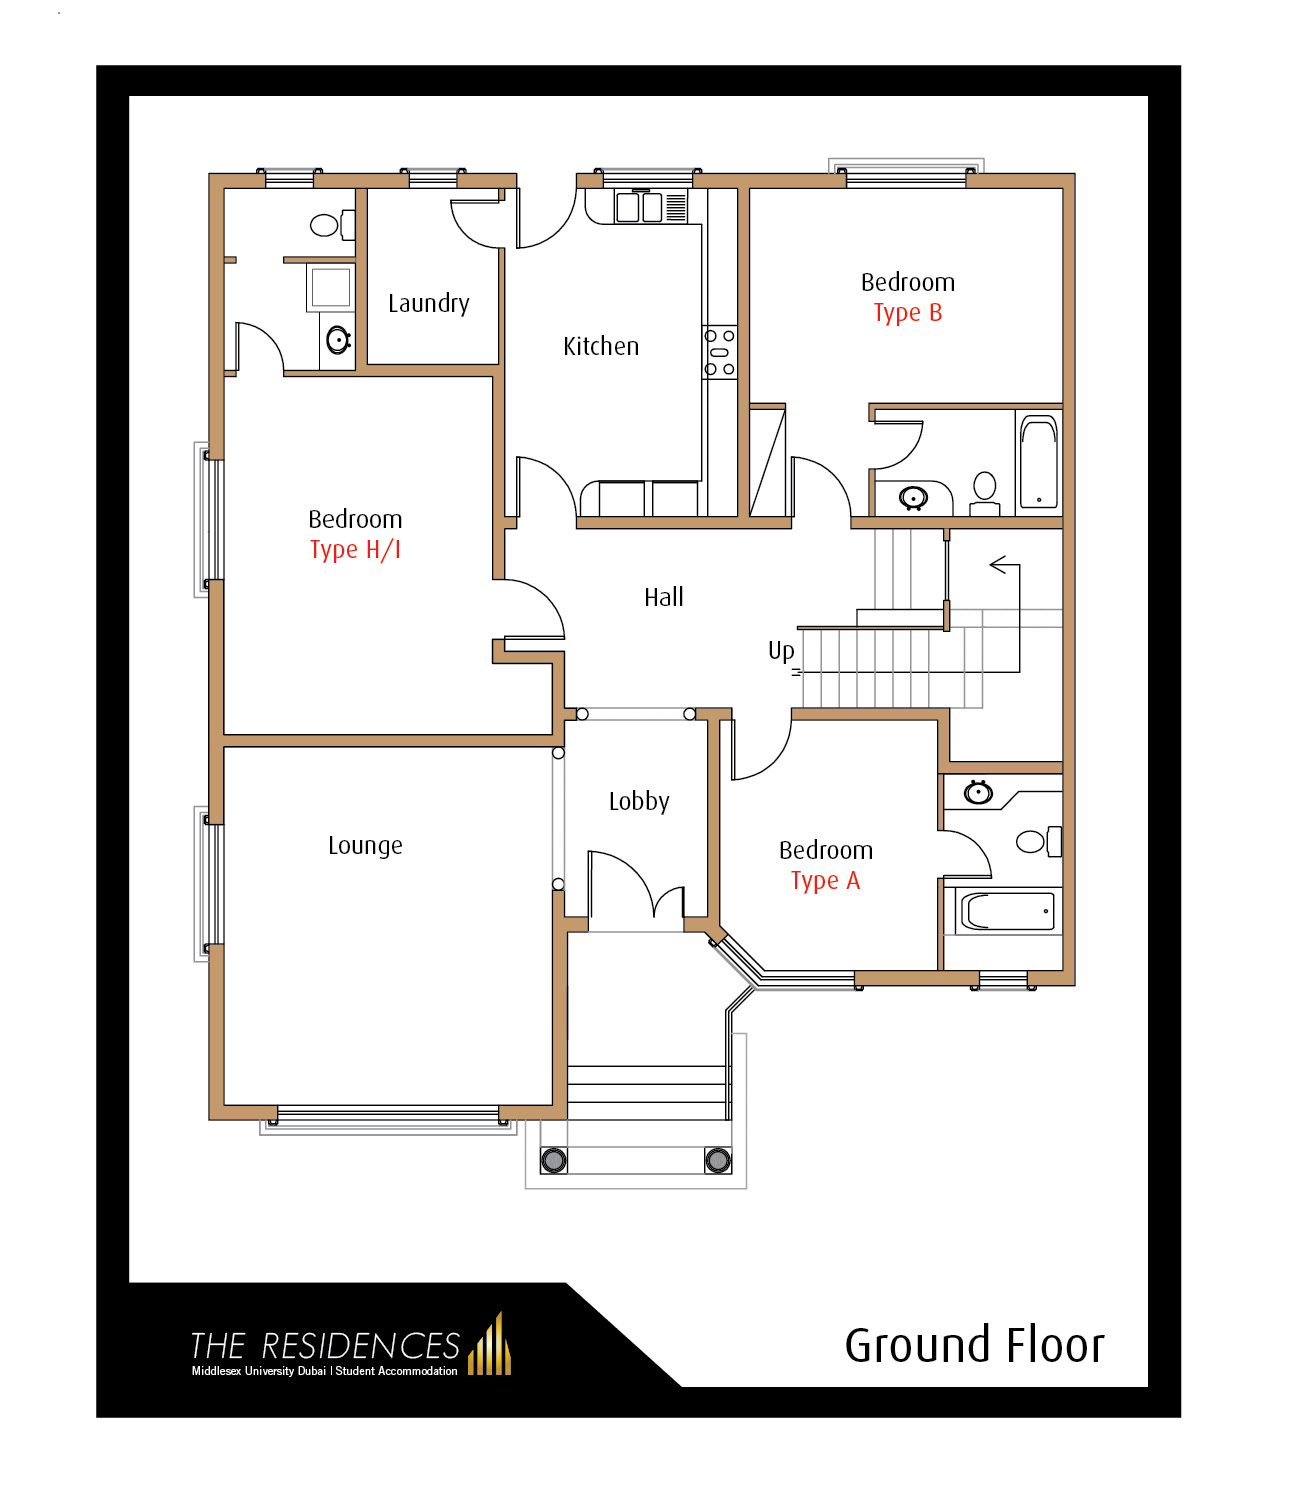 Floor Plans - The Residences